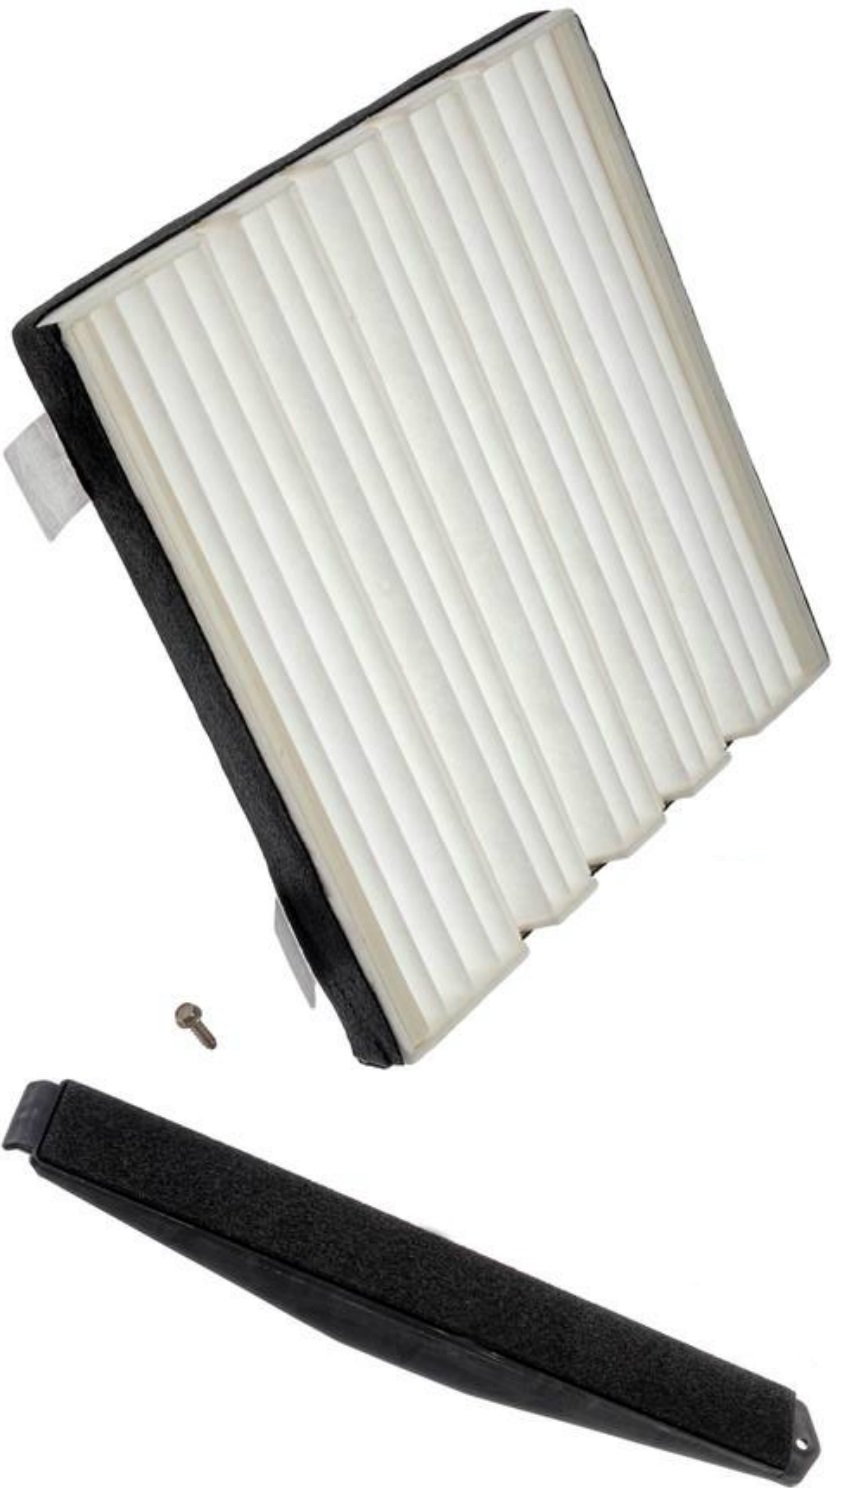 Apdty 112724 Cabin Air Filter Add On Retro Kit Standard Gmc Envoy Parts Diagram Engine Car And Component Cover Screws Instructions Fits 2007 2013 Escalade Avalanche Silverado